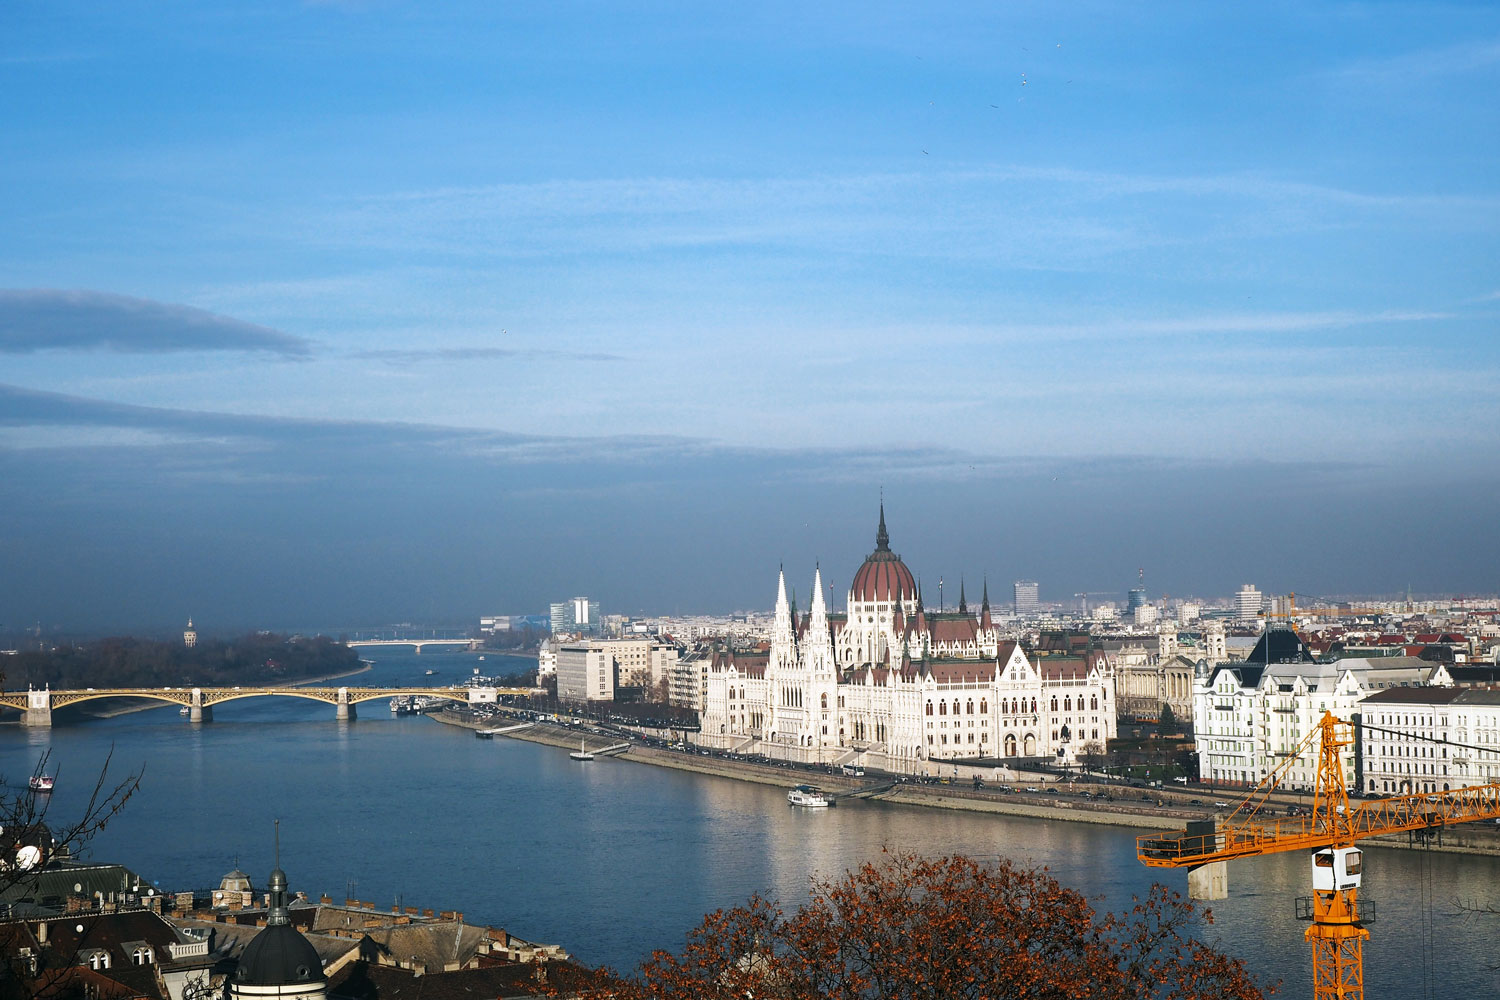 budapest-river-travel-blog-review-zoe-newlove